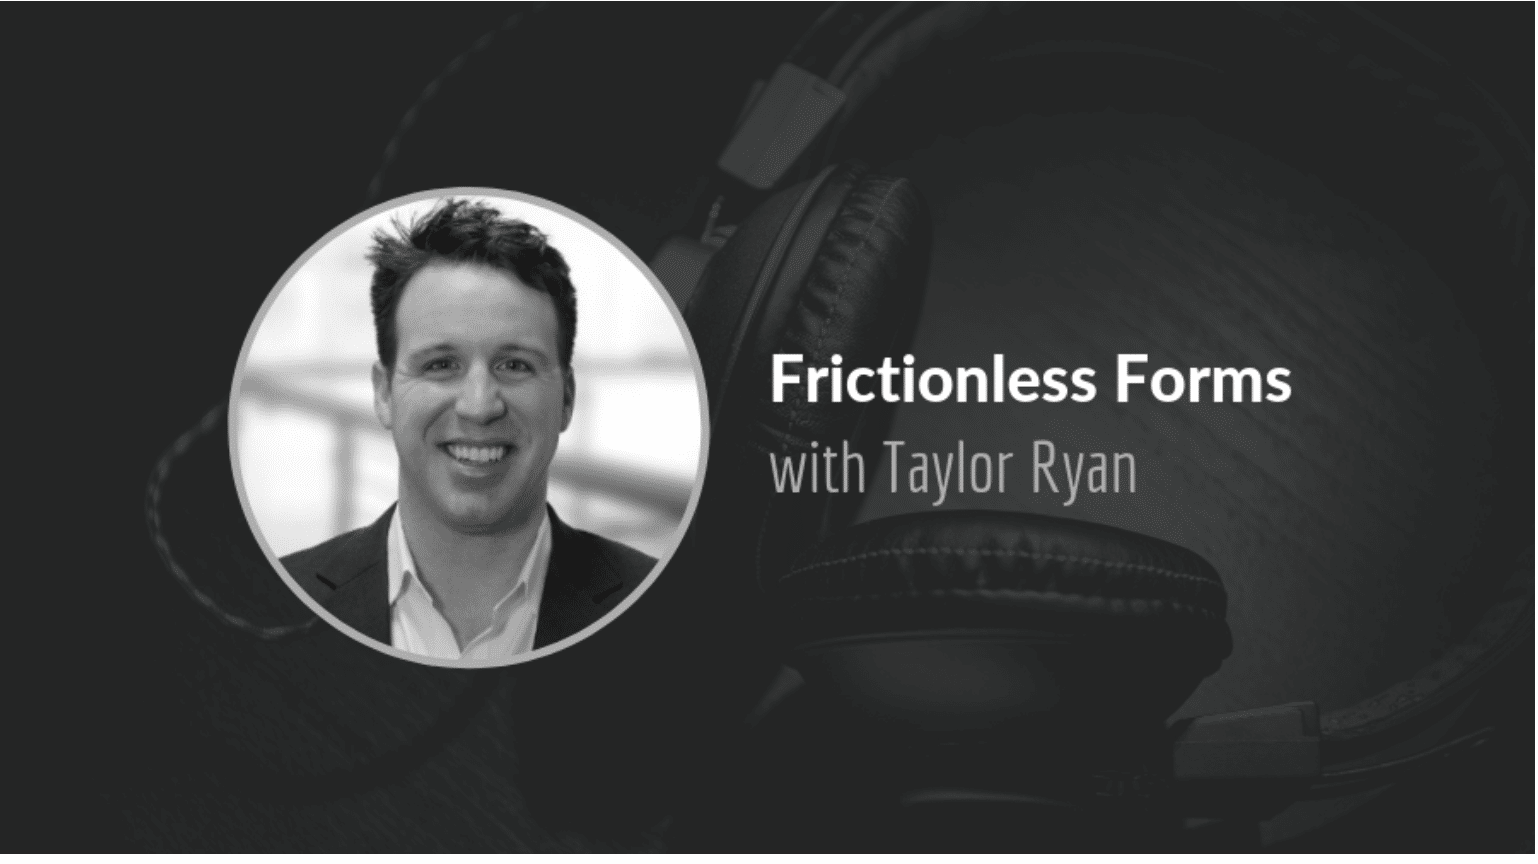 Frictionless Forms with Taylor Ryan